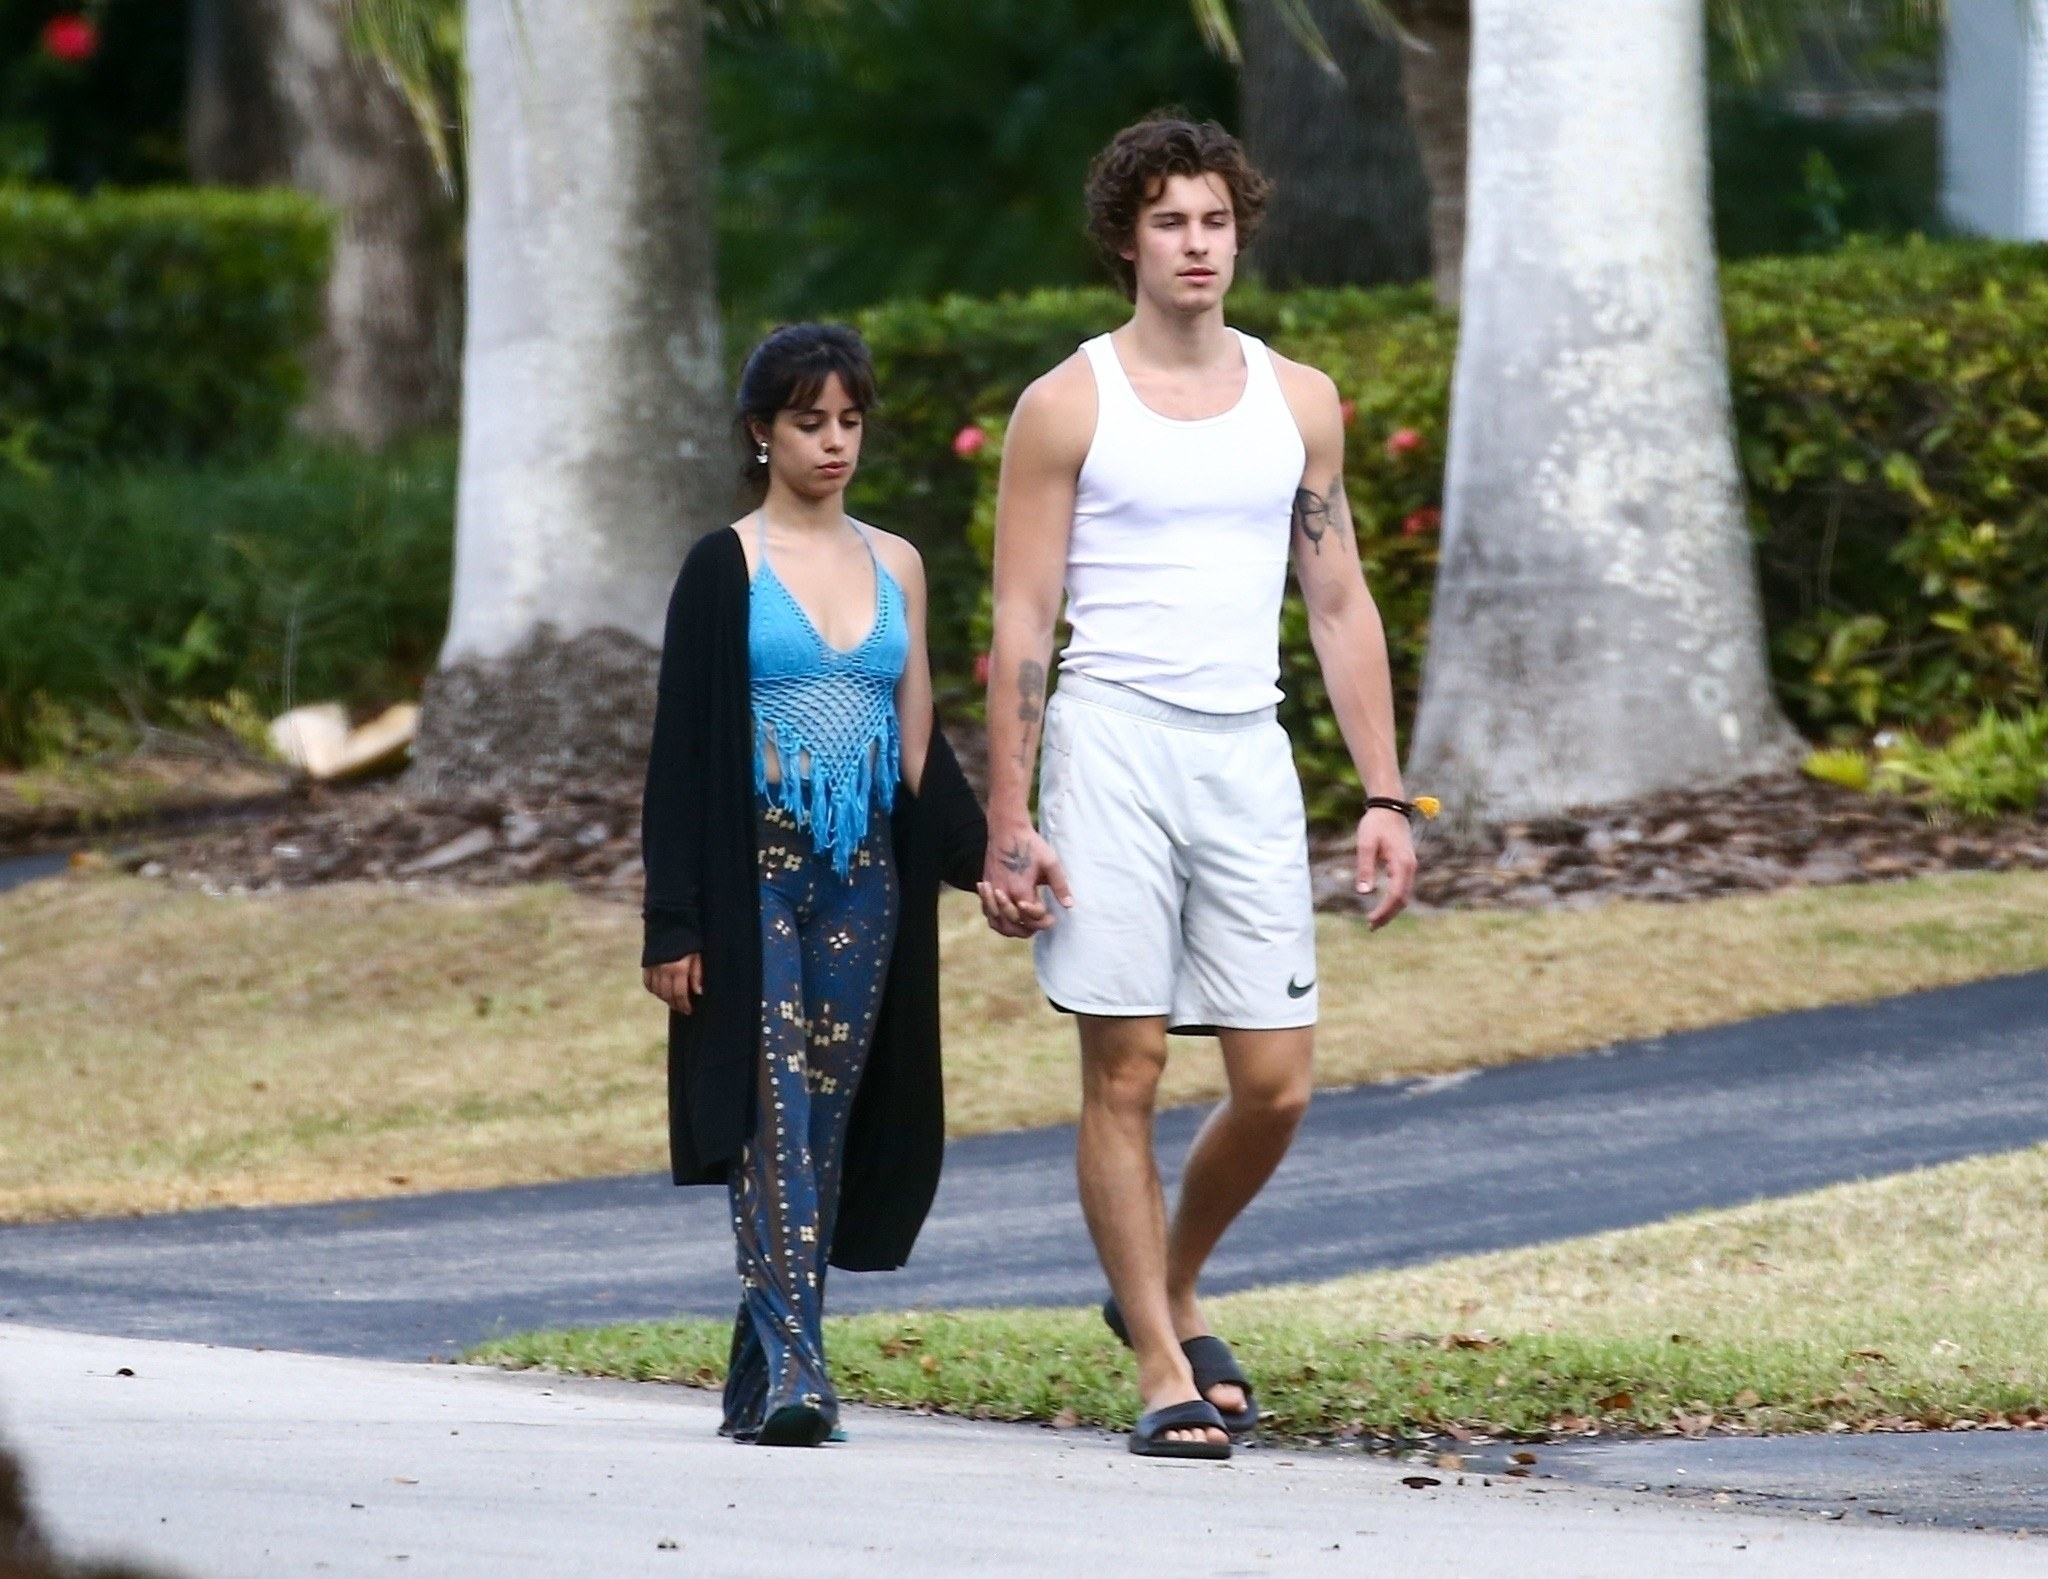 Shawn and Camila on a morning walk